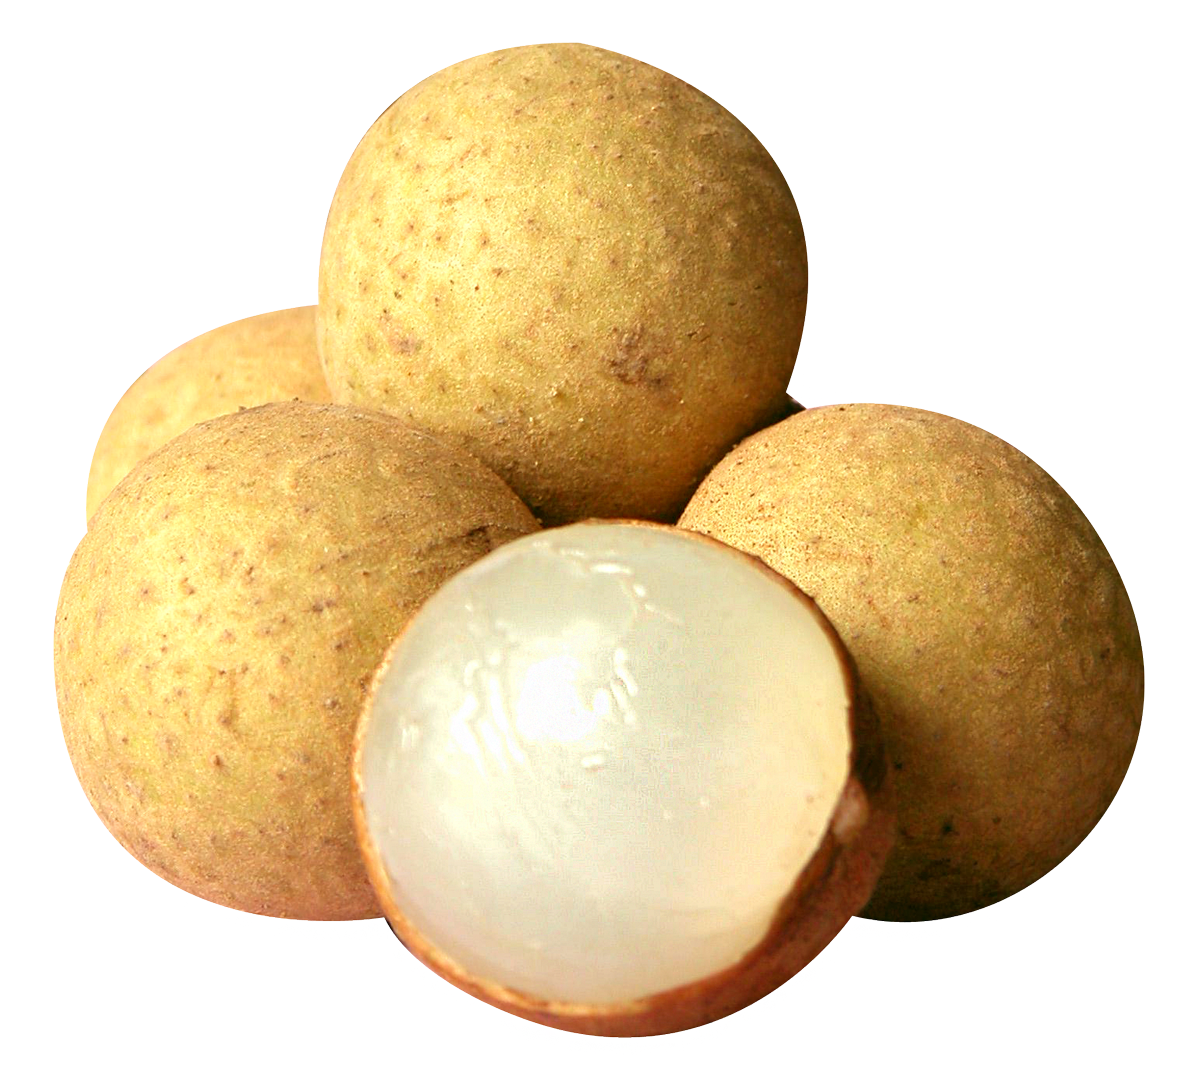 Fruits transparent longan. Png image purepng free